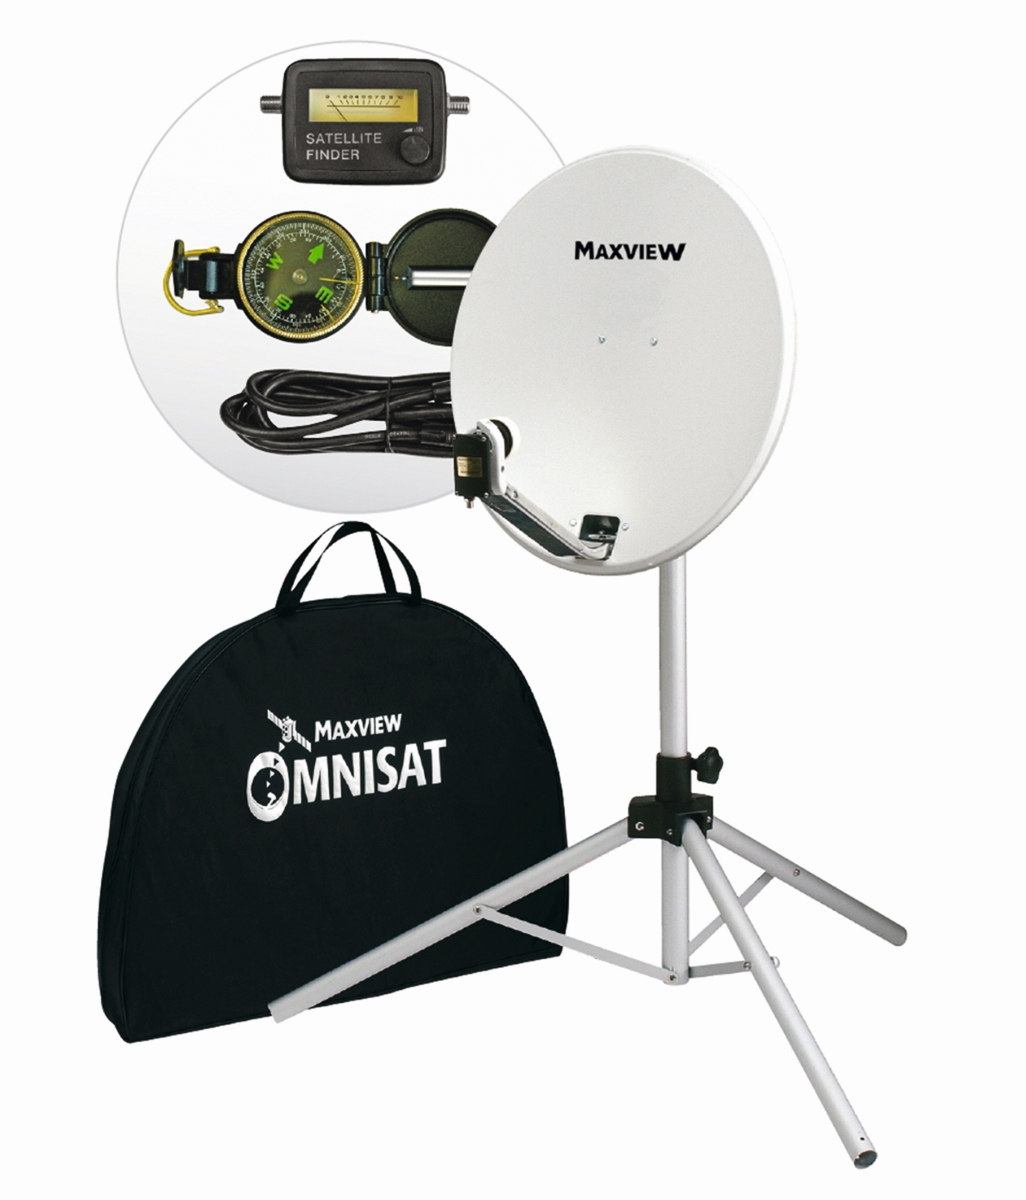 MAXVIEW Portable-Sat-Kit Light 54 cm